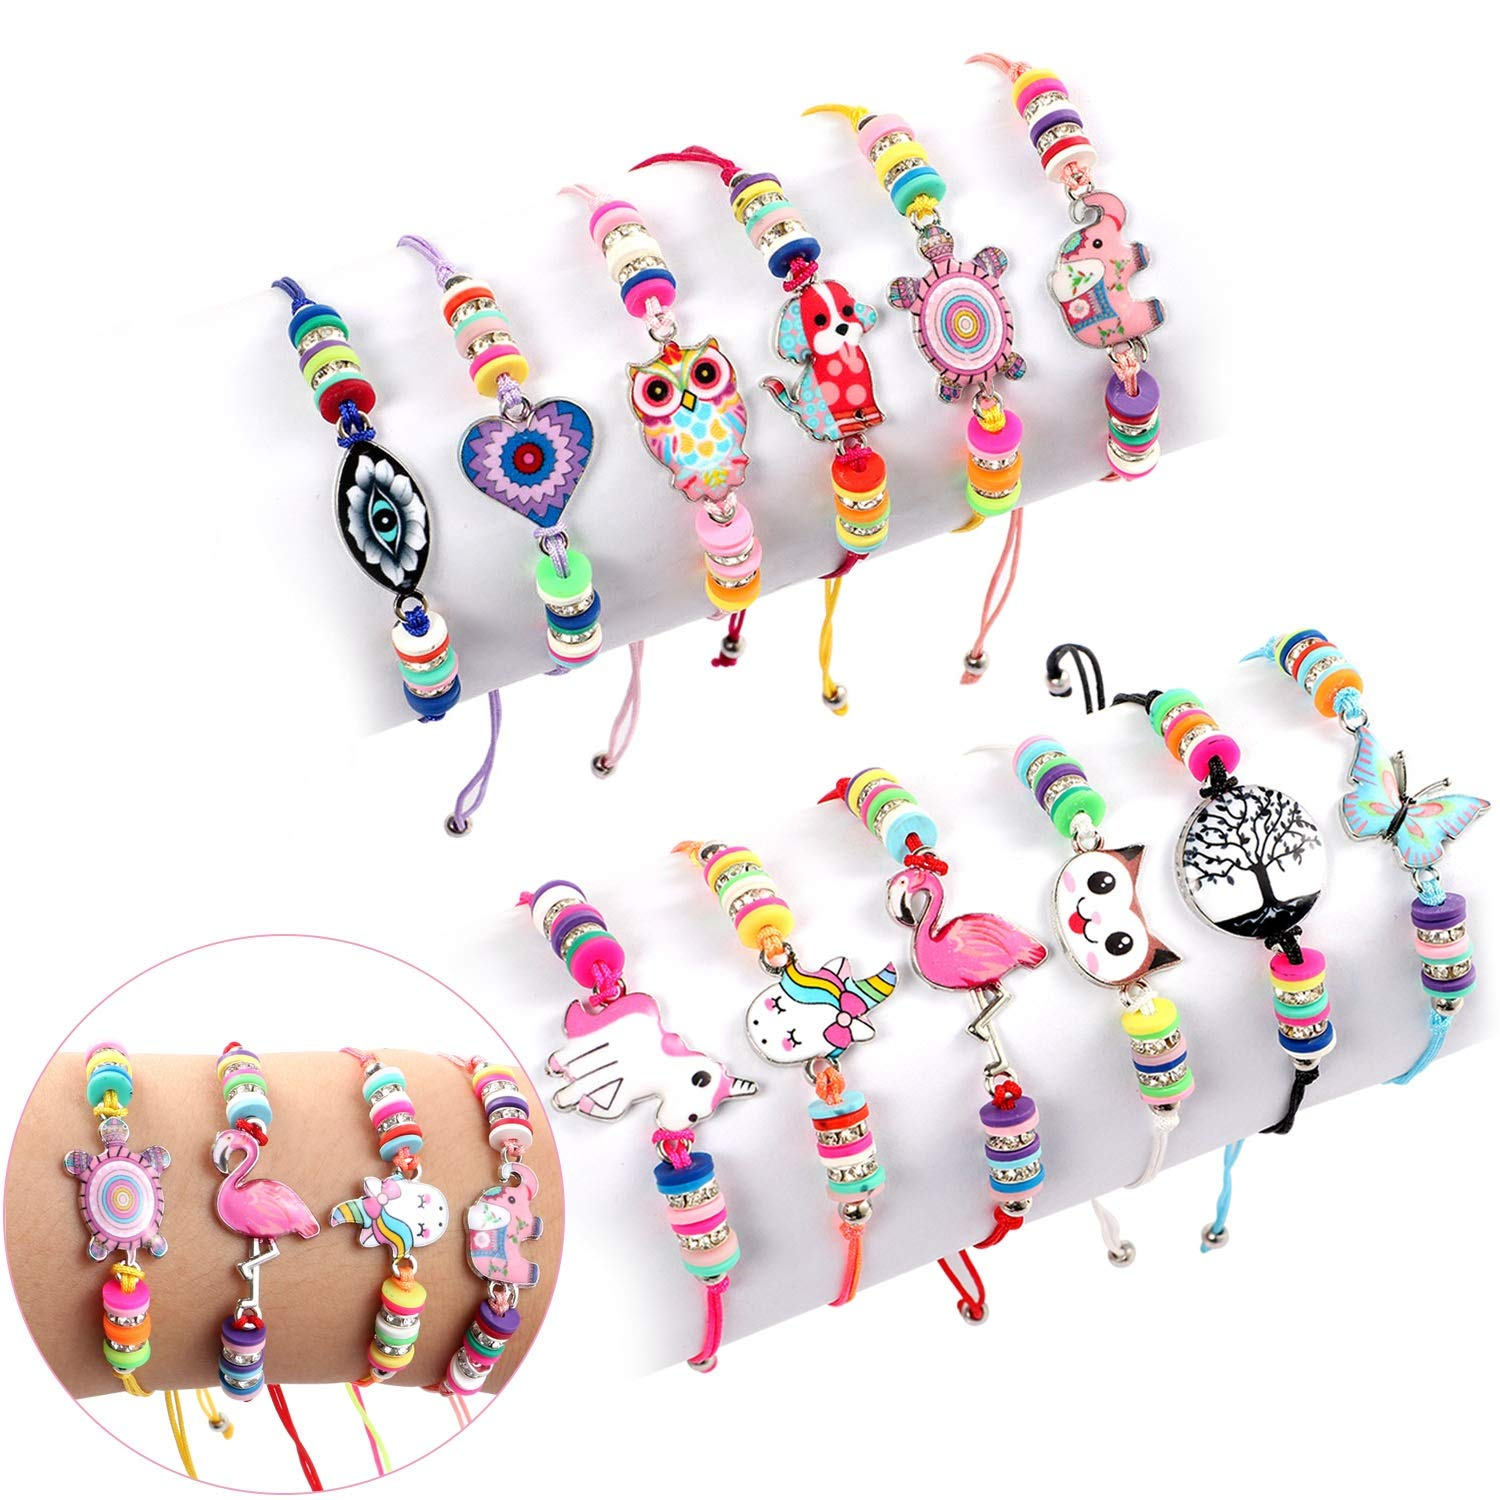 Lorfancy 12 Pcs Kids Girls Women Bracelets Jewelry Animal Pendant Unicorn Owl Cute Bracelet Multicolor Woven Bracelets for Prize Pretend Play Party Favors for Girls Kids Friendship Bracelets by Lorfancy